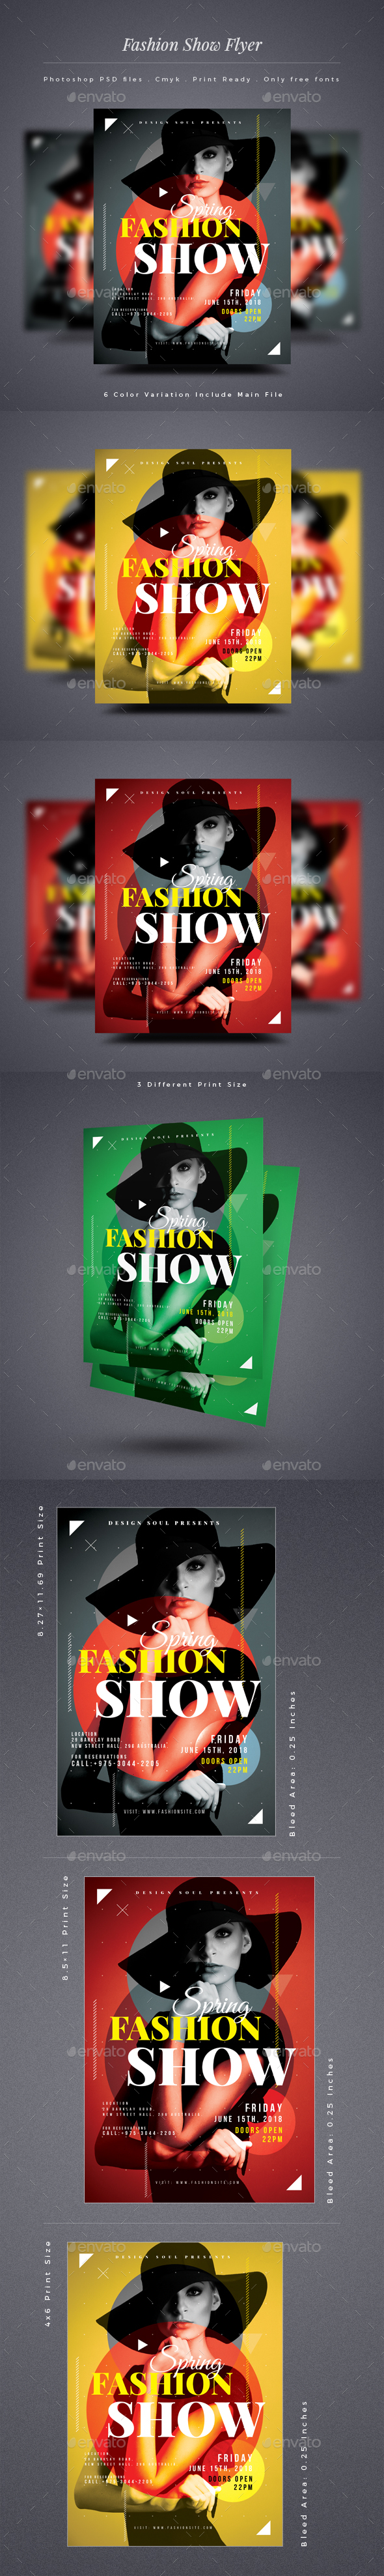 Fashion Show Flyer - Miscellaneous Events